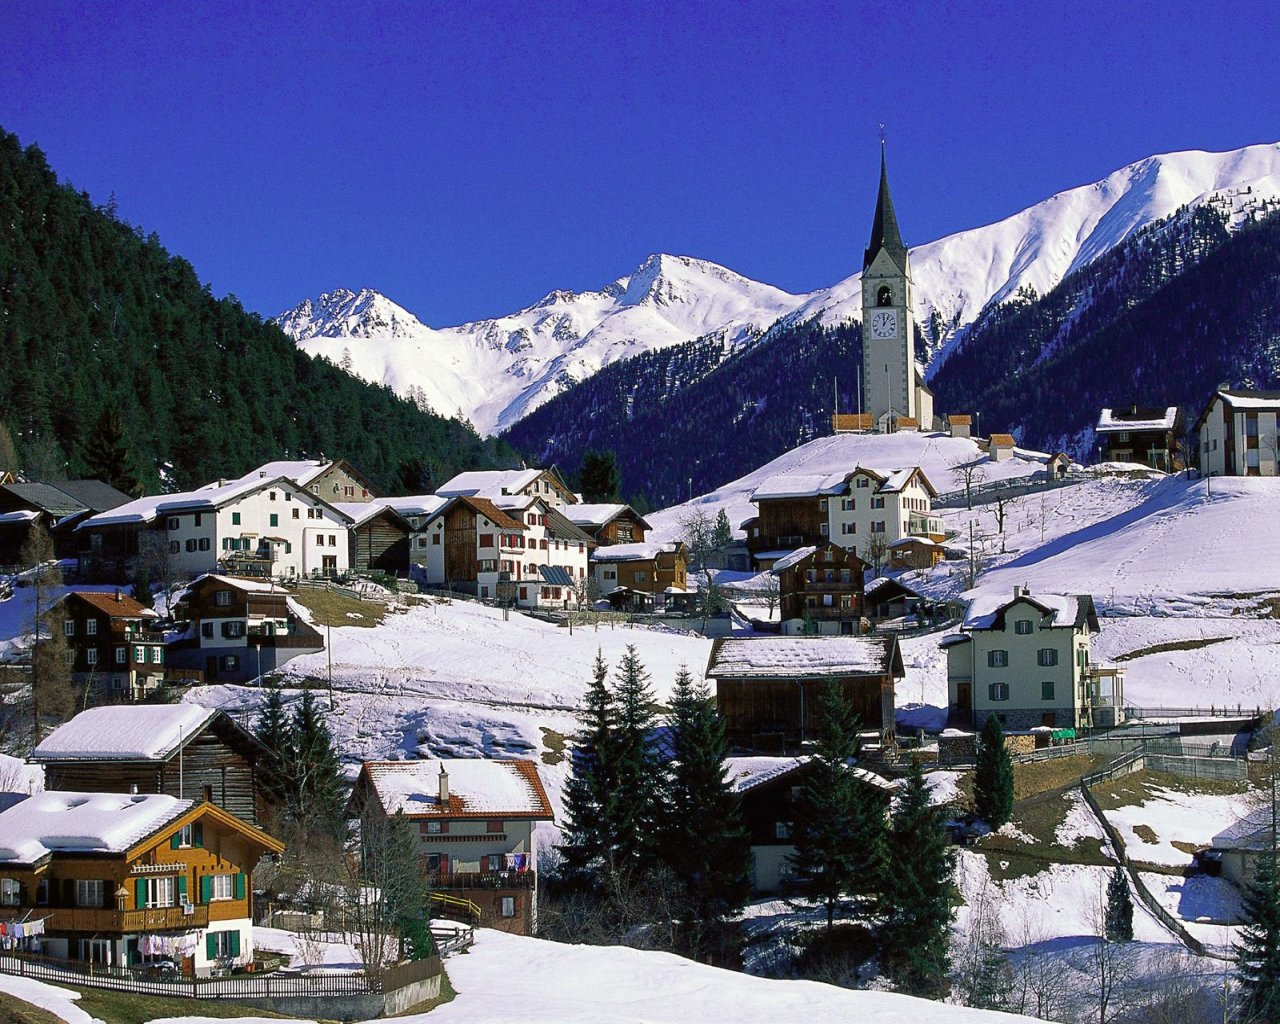 small-village-graubunden-switzerland-wallpaper_1280x1024-1